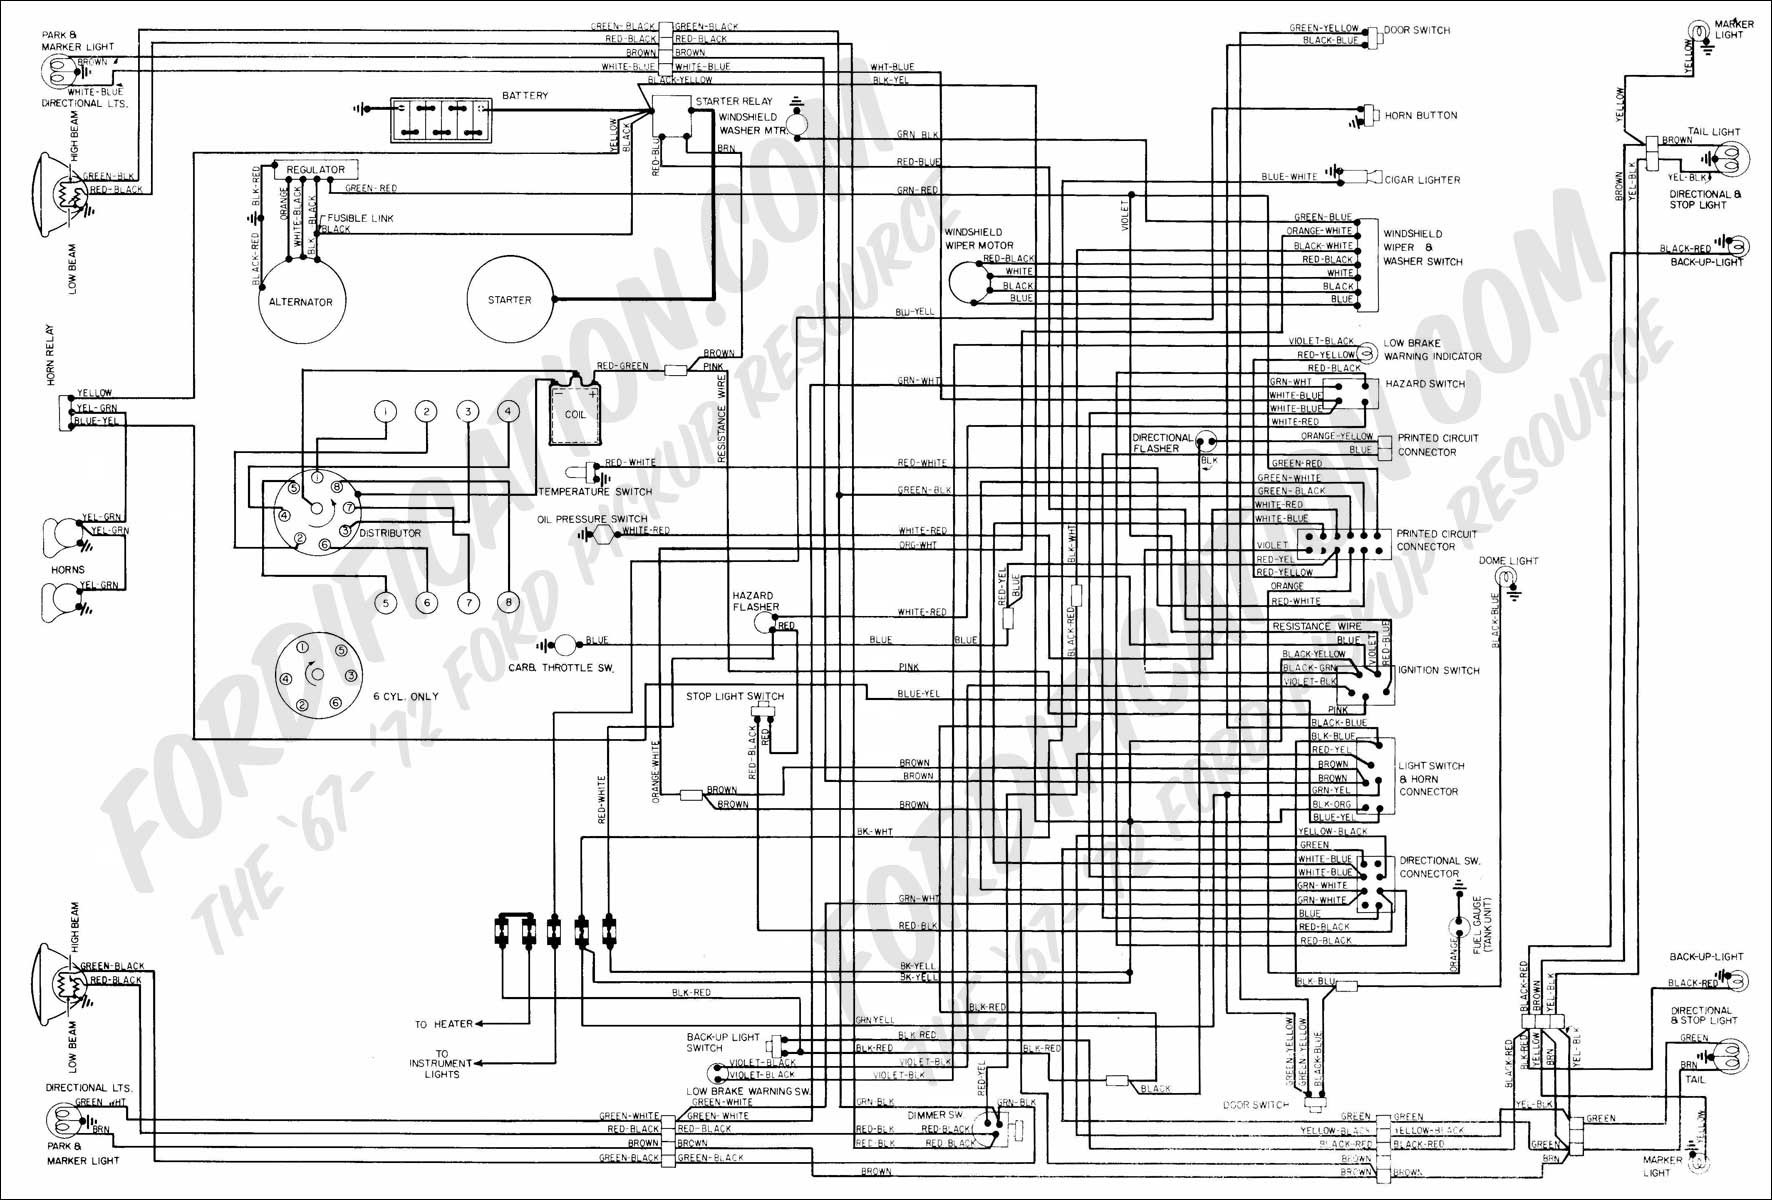 Ford Windstar Wiring Schematic Library 2000 Headlight Diagram 2003 Headlamp 1999 Rh Detoxicrecenze Com